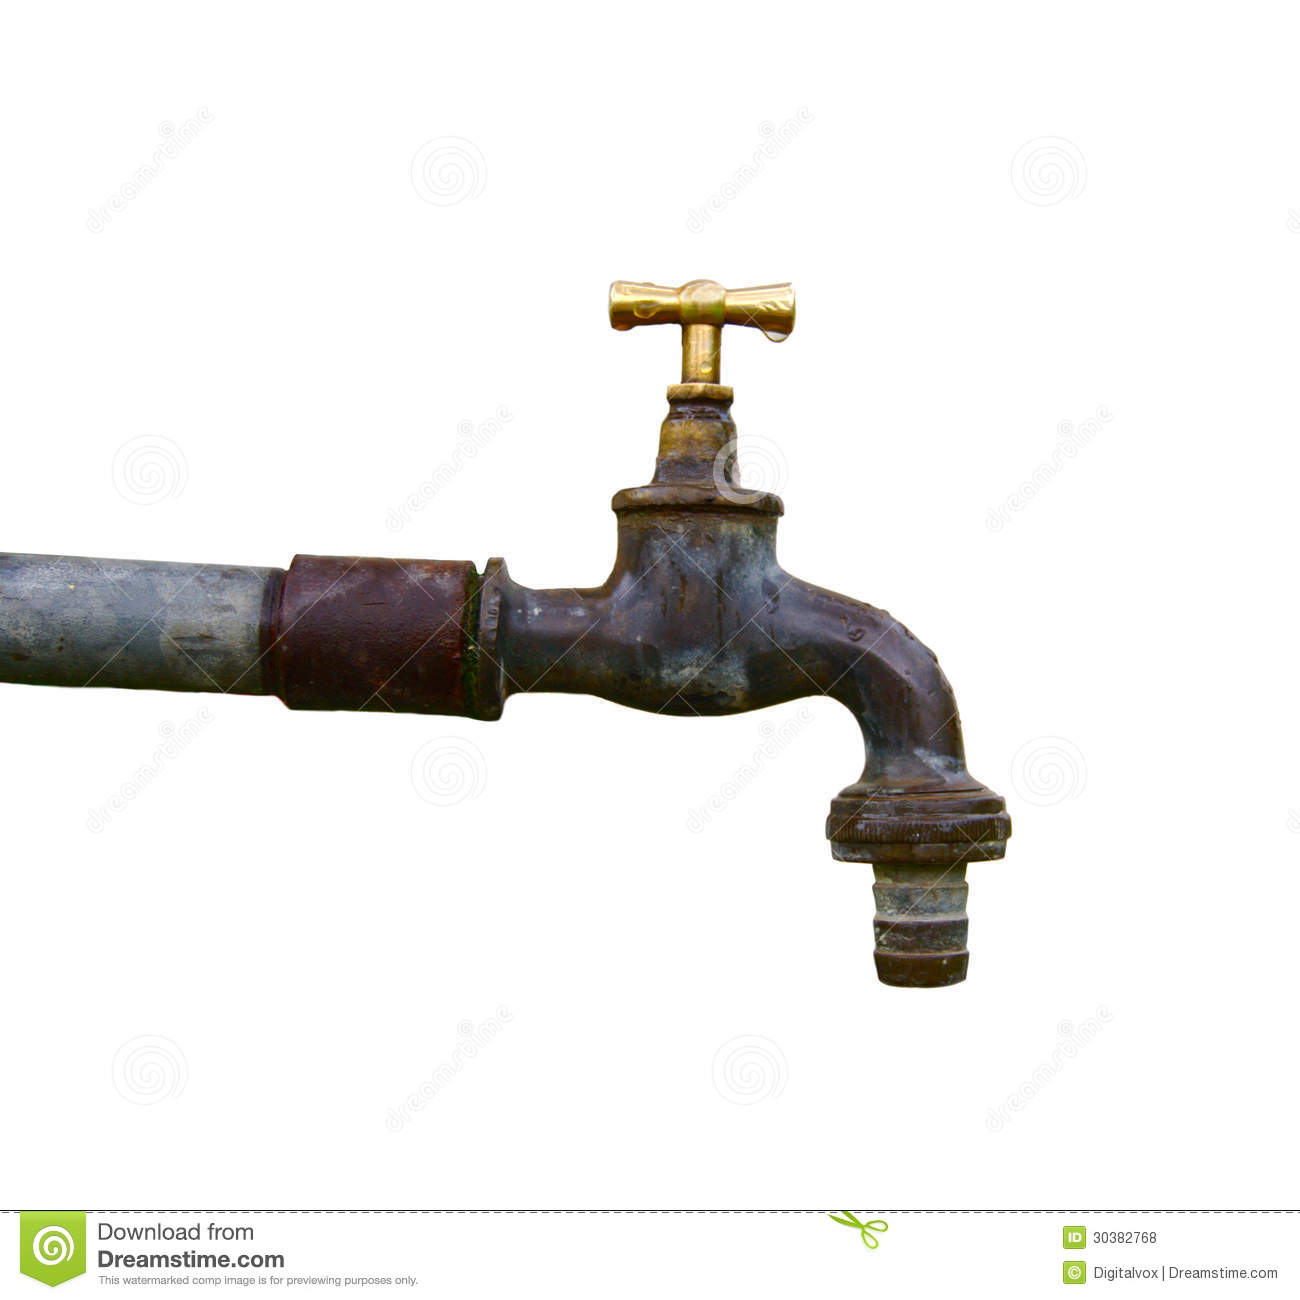 water faucet royalty free stock photos image 30382768